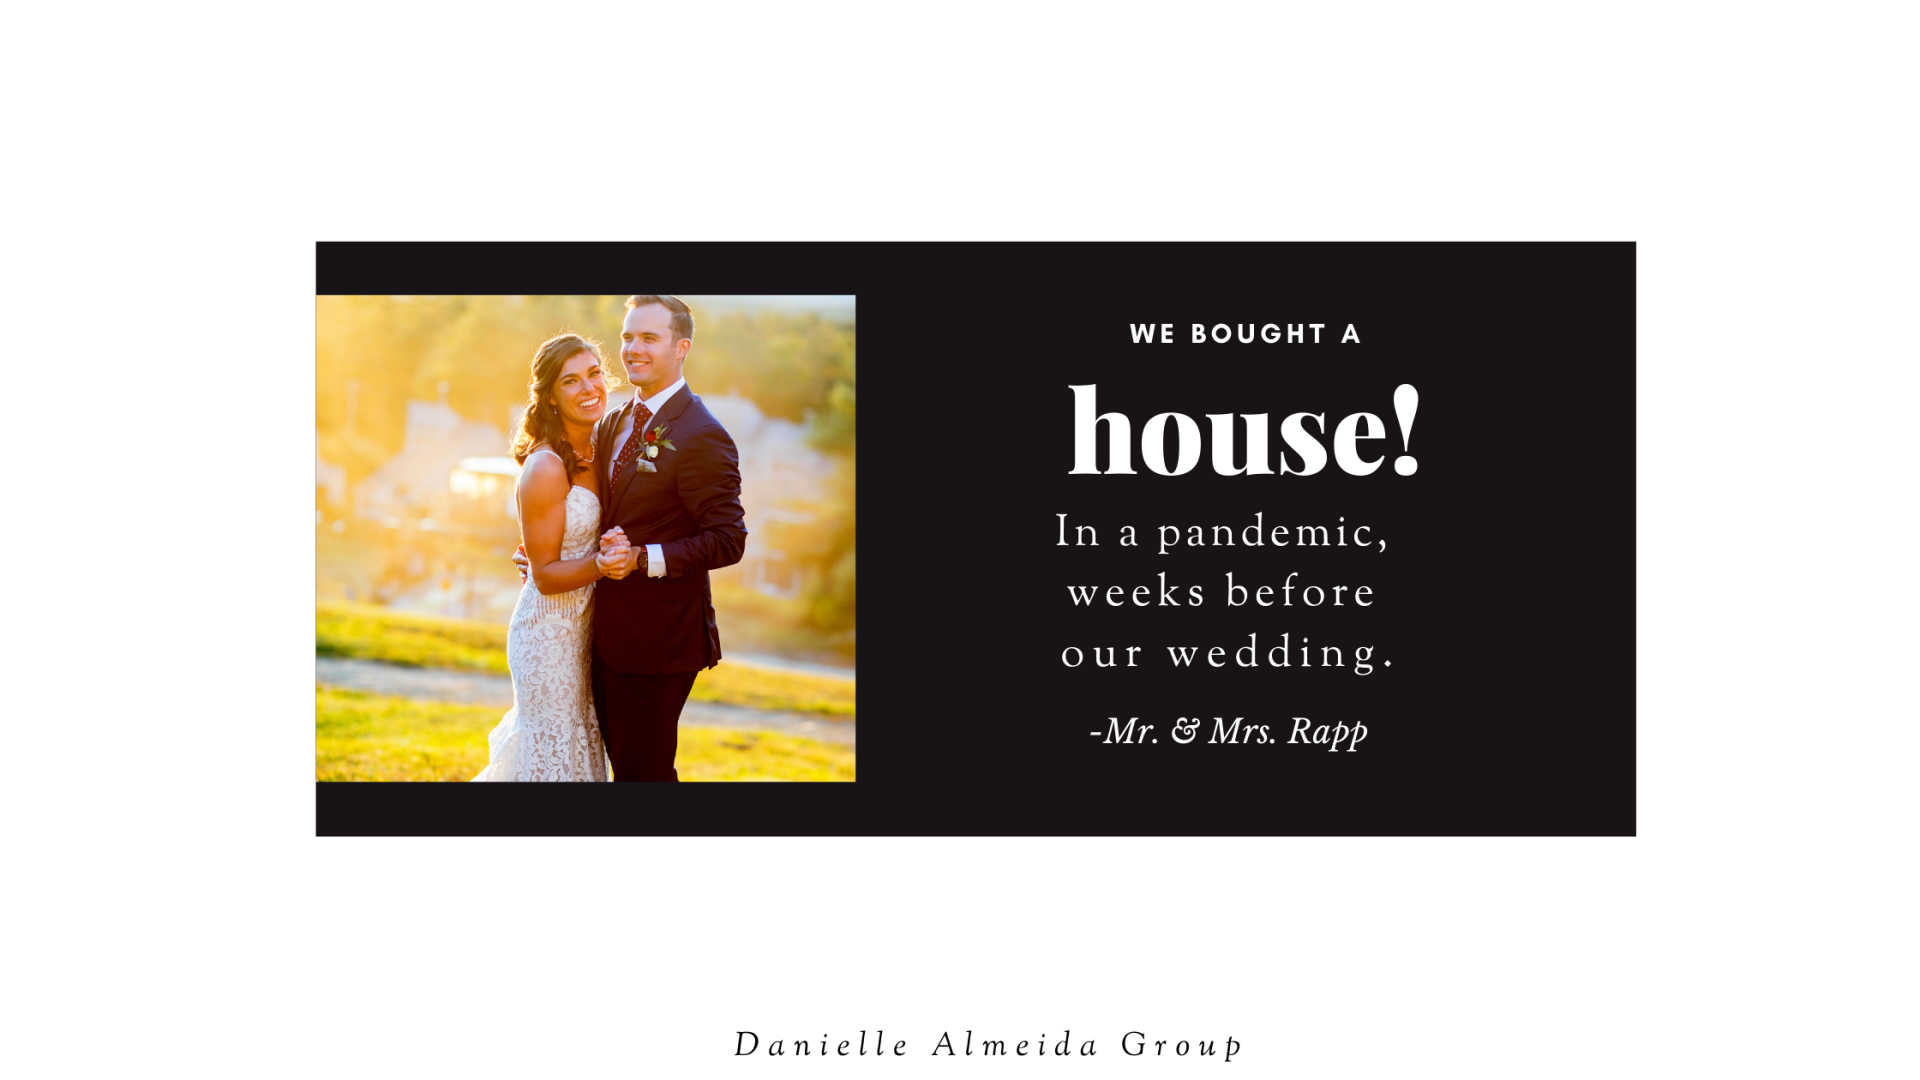 We Bought A House, During a Pandemic, Weeks before our Wedding